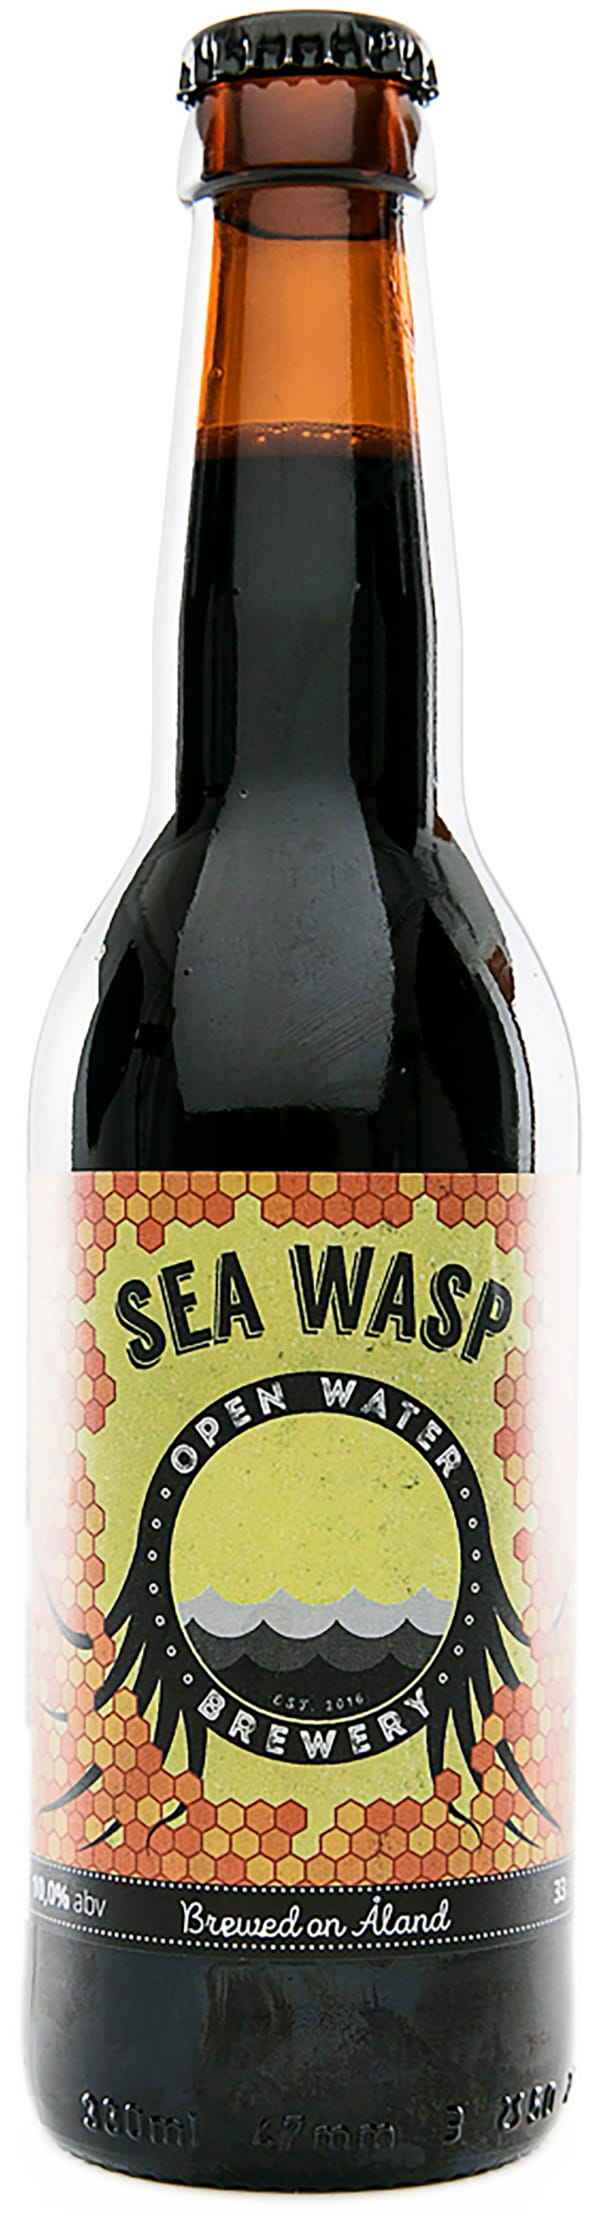 Open Water Sea Wasp